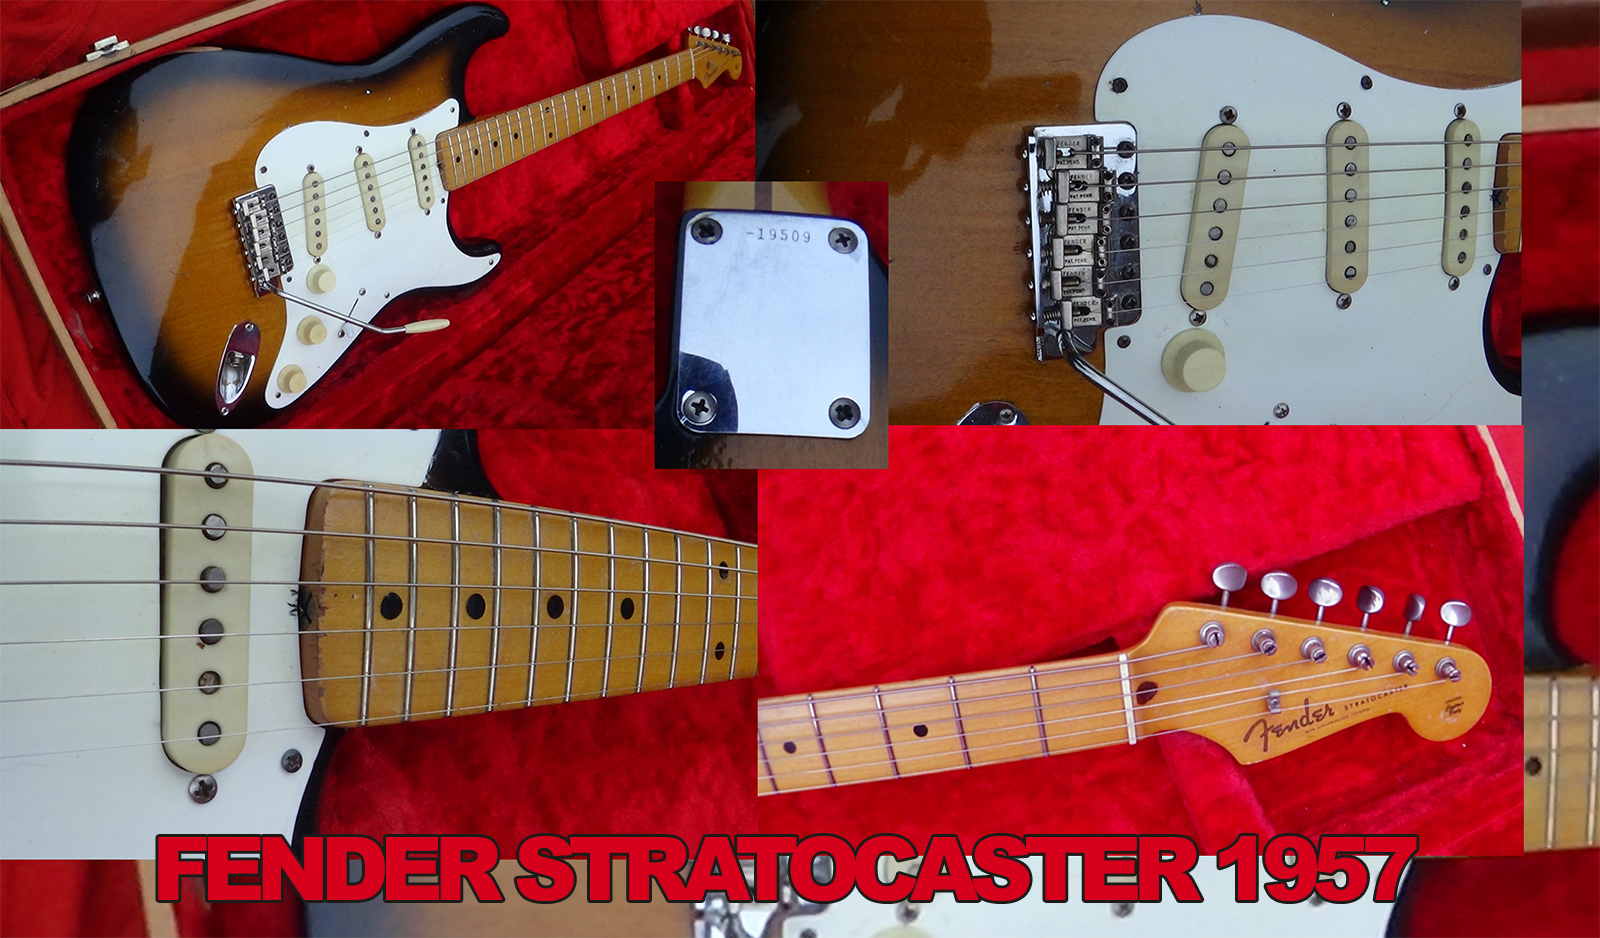 STRAT 57 Blues Rock Nederland